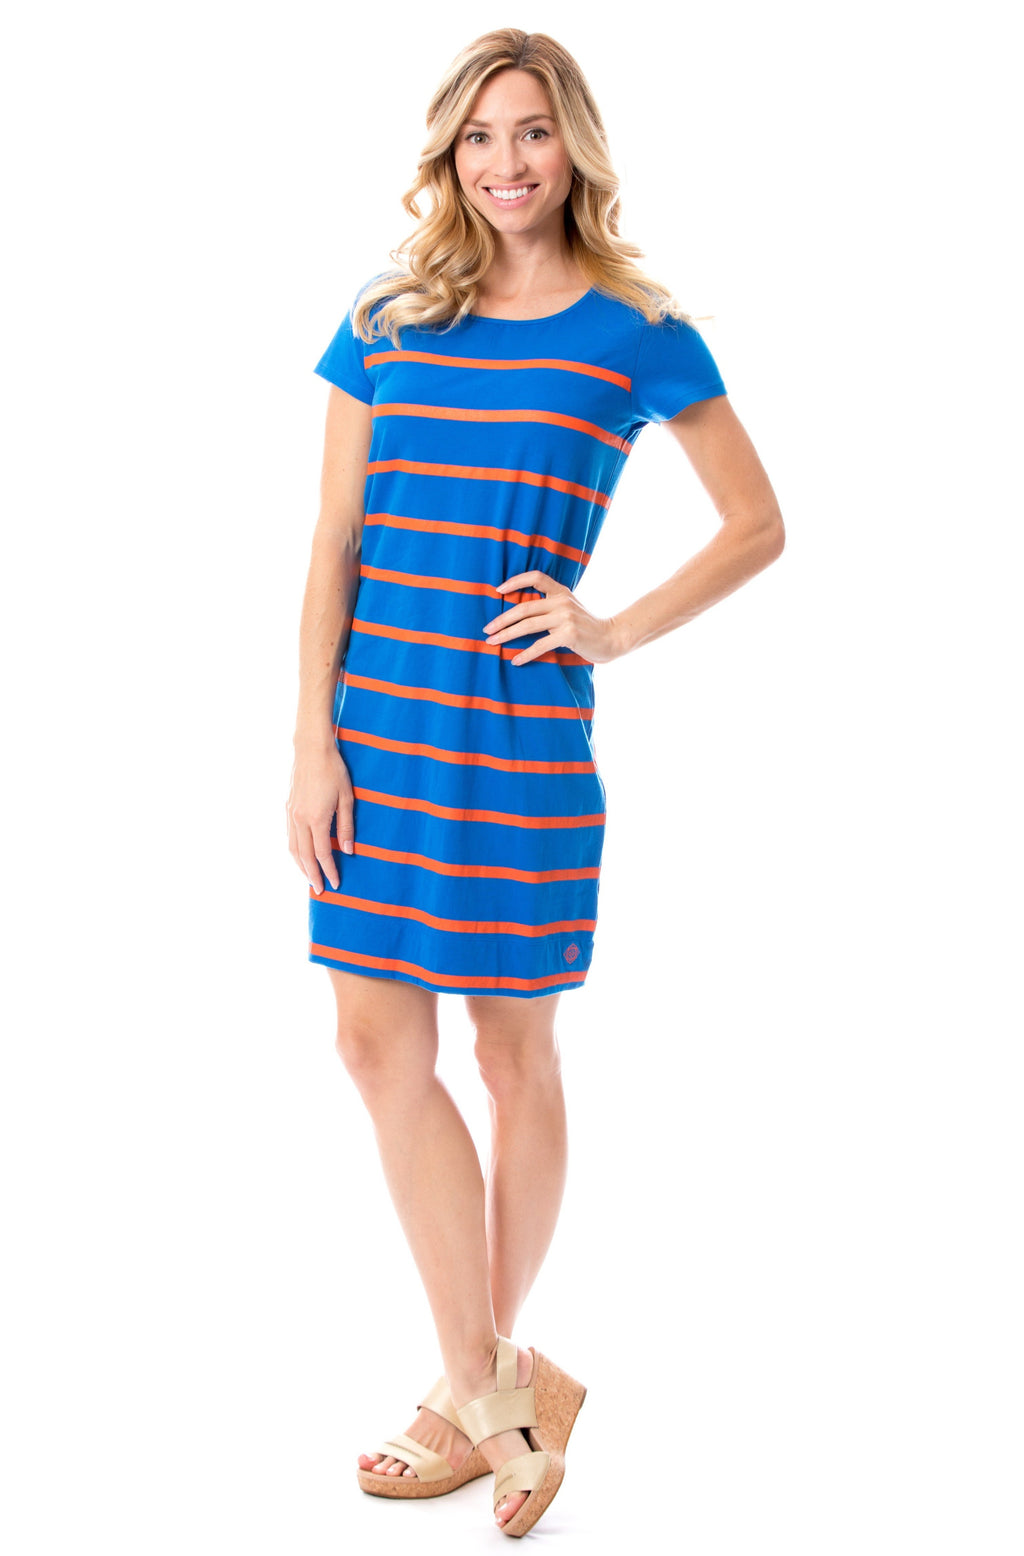 Short Sleeve Stripes | Dress | Blue + Orange